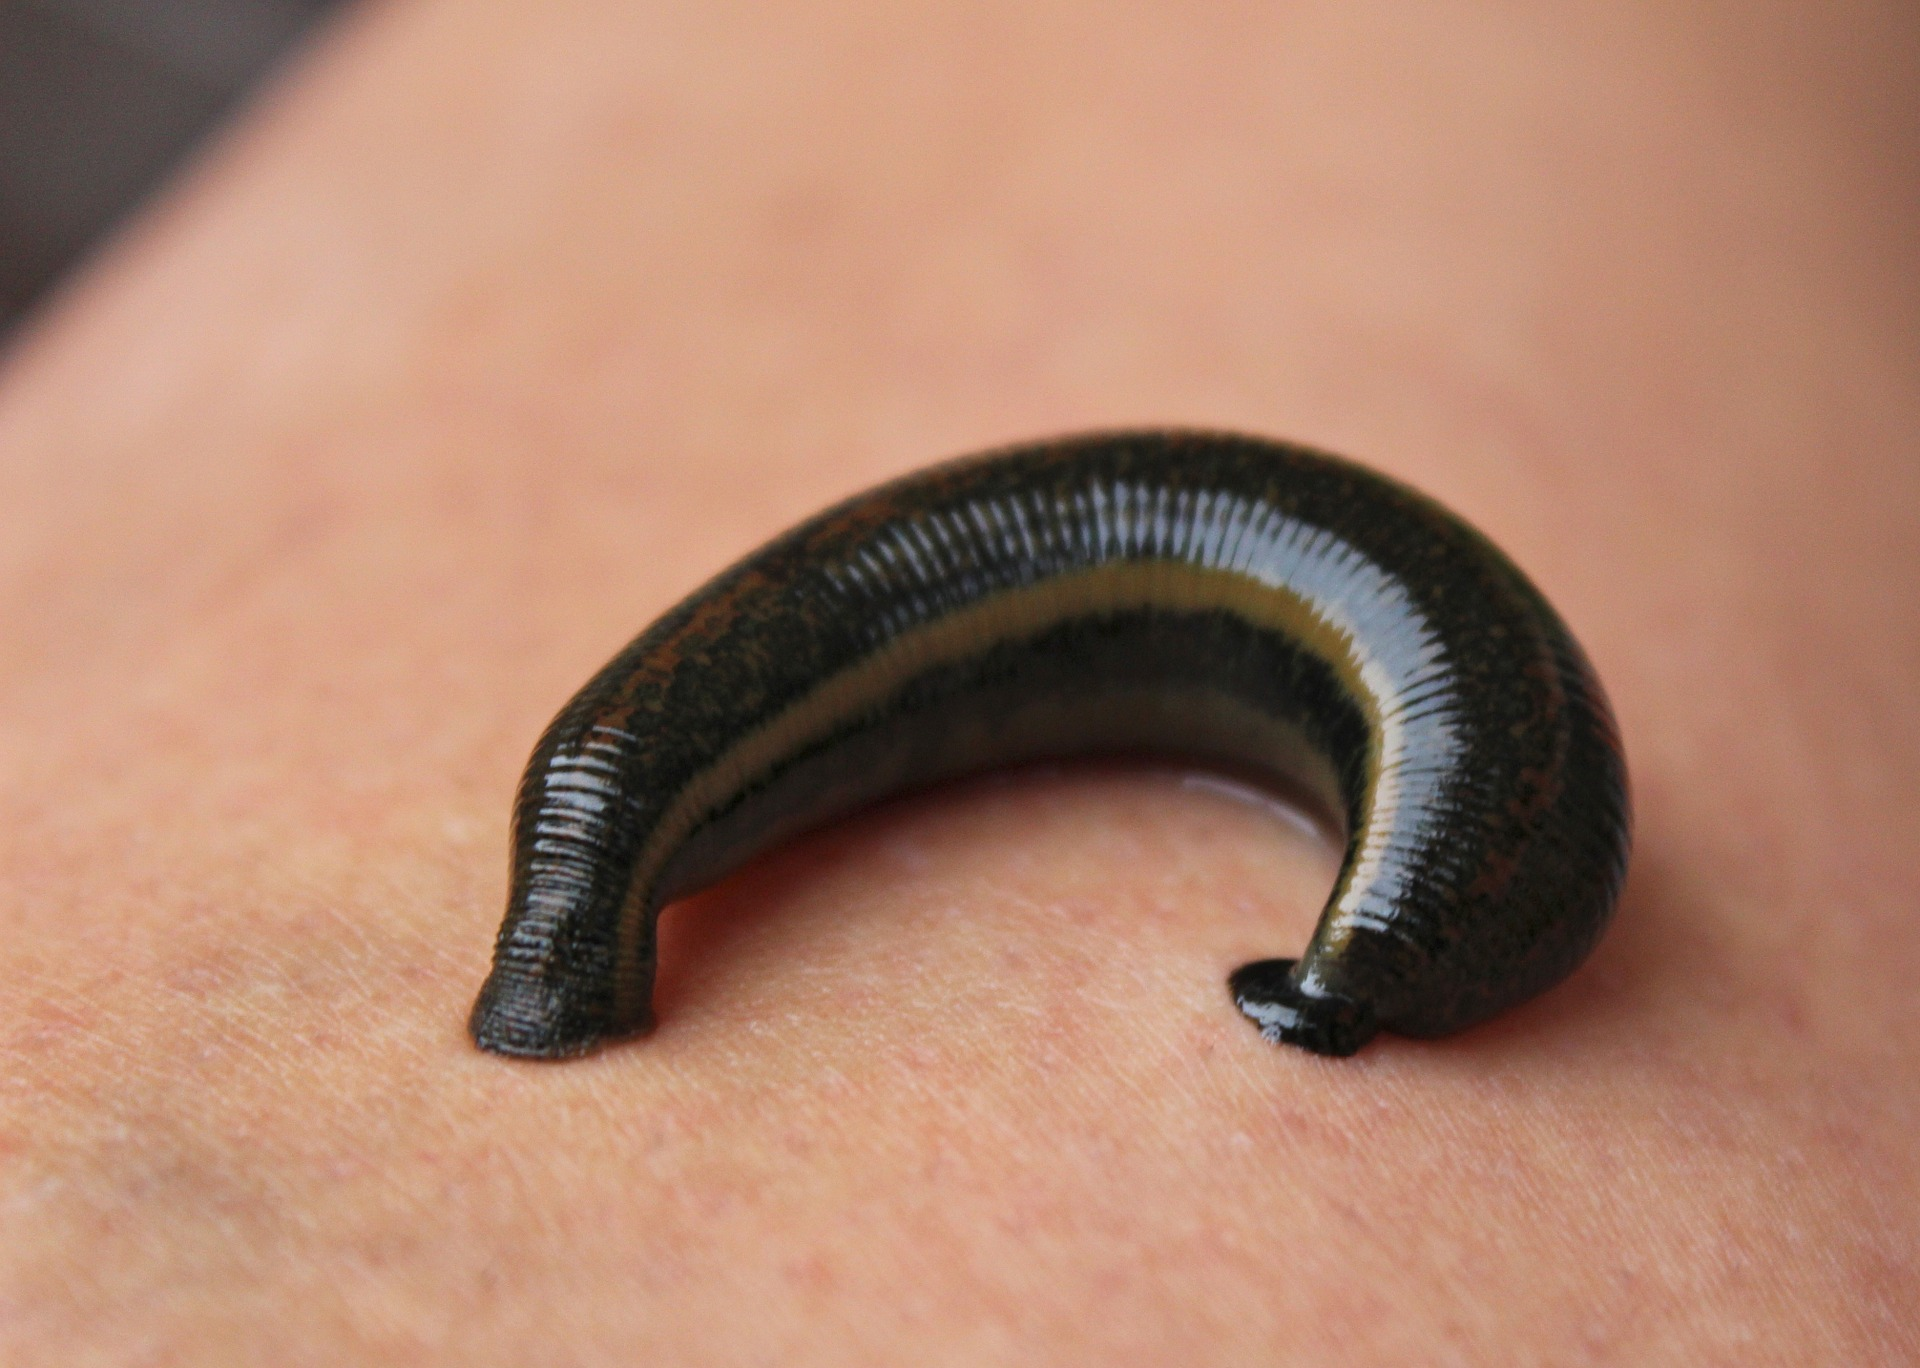 5,000 blood-sucking leeches into Canada